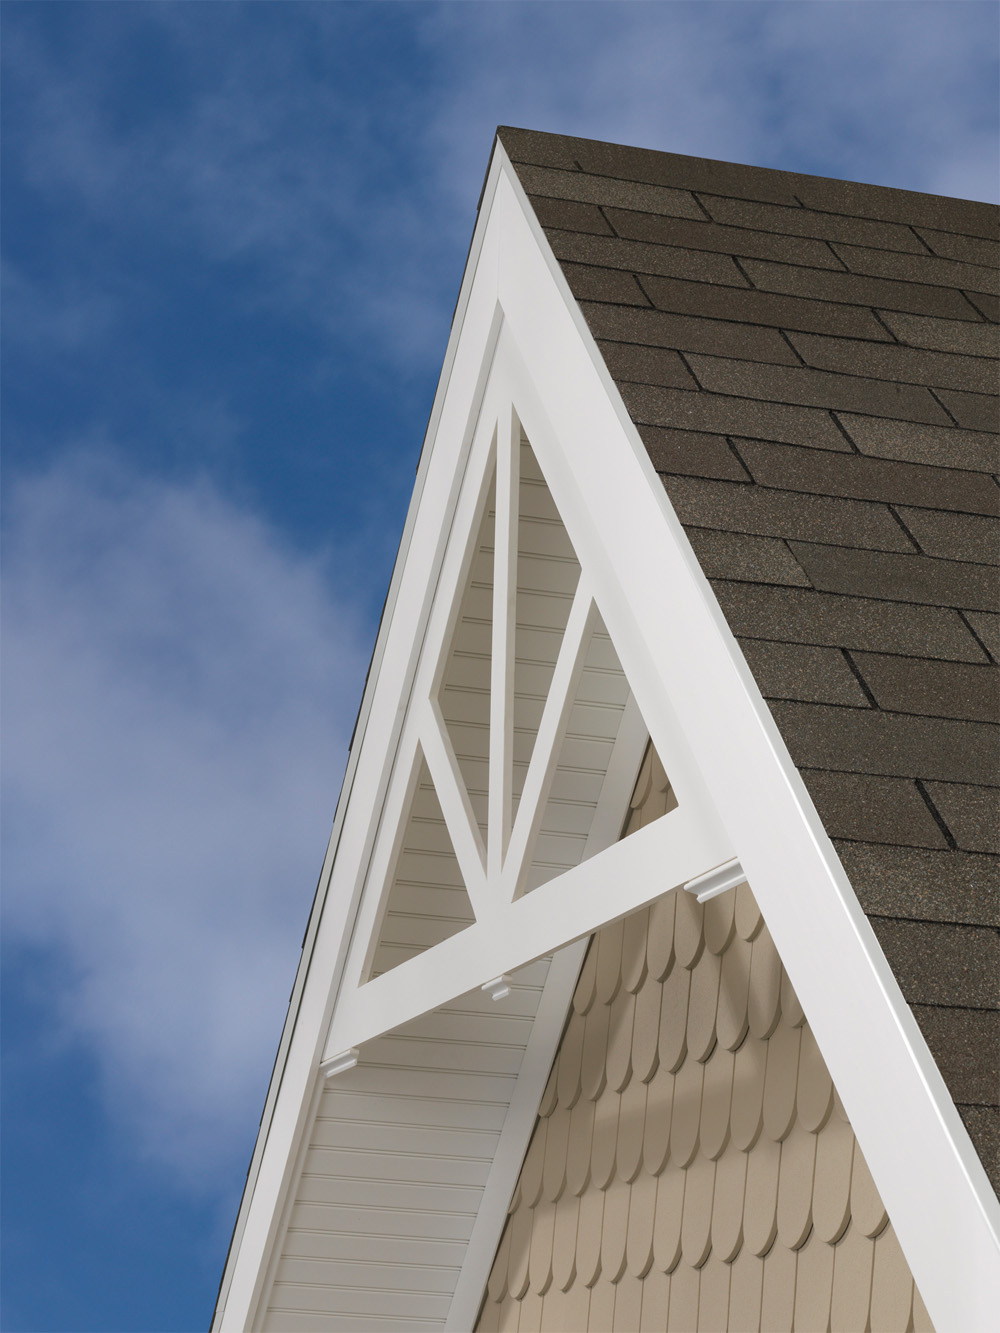 low-maintenance vinyl siding - Siding - Lap Siding - Vertical Siding - Shakes and Shingles